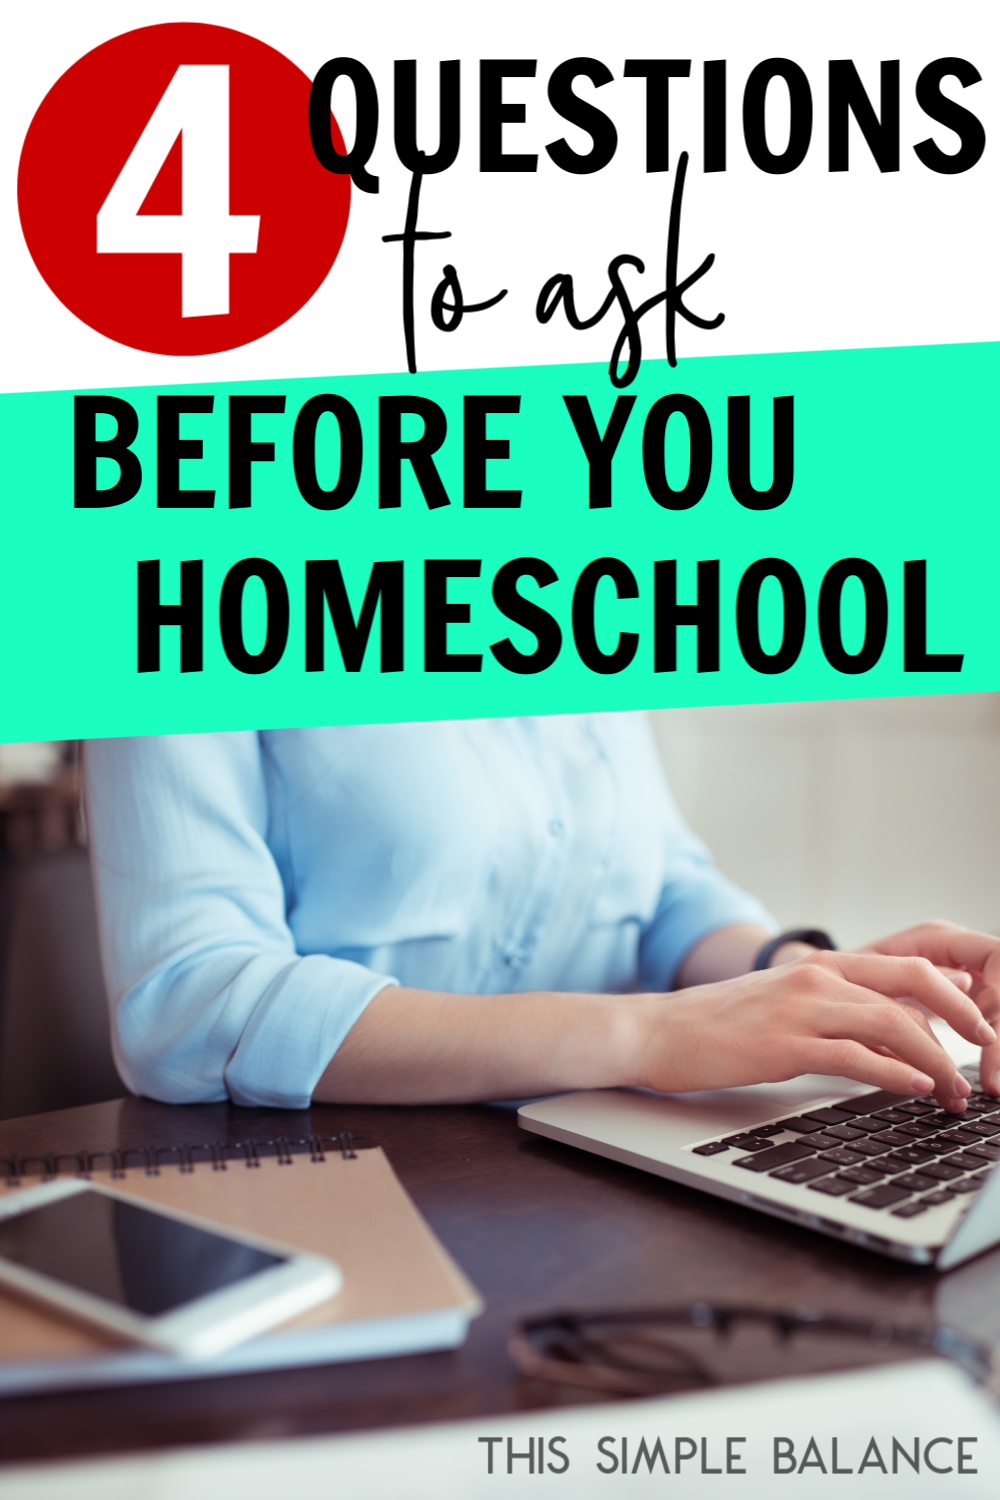 4 Questions to ask BEFORE you homeschool to save you time, money, and frustration